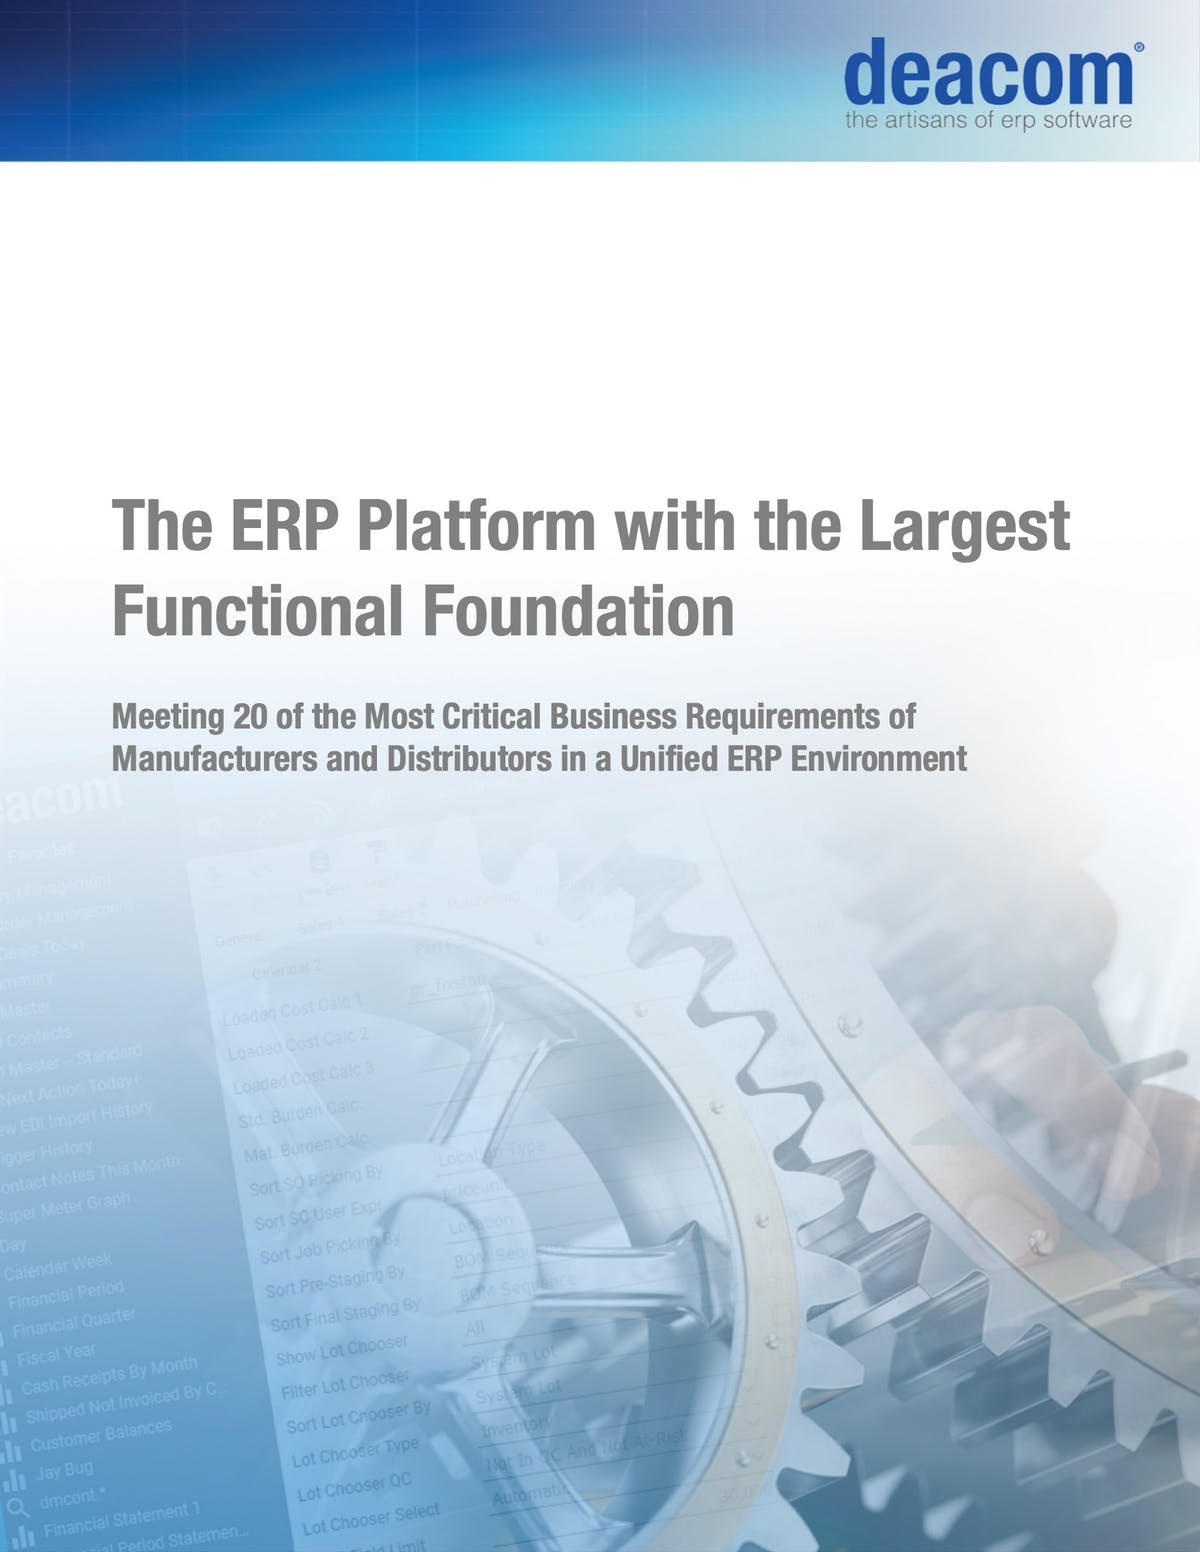 DEACOM ERP White Paper - The ERP Platform with the Largest Functional Foundation